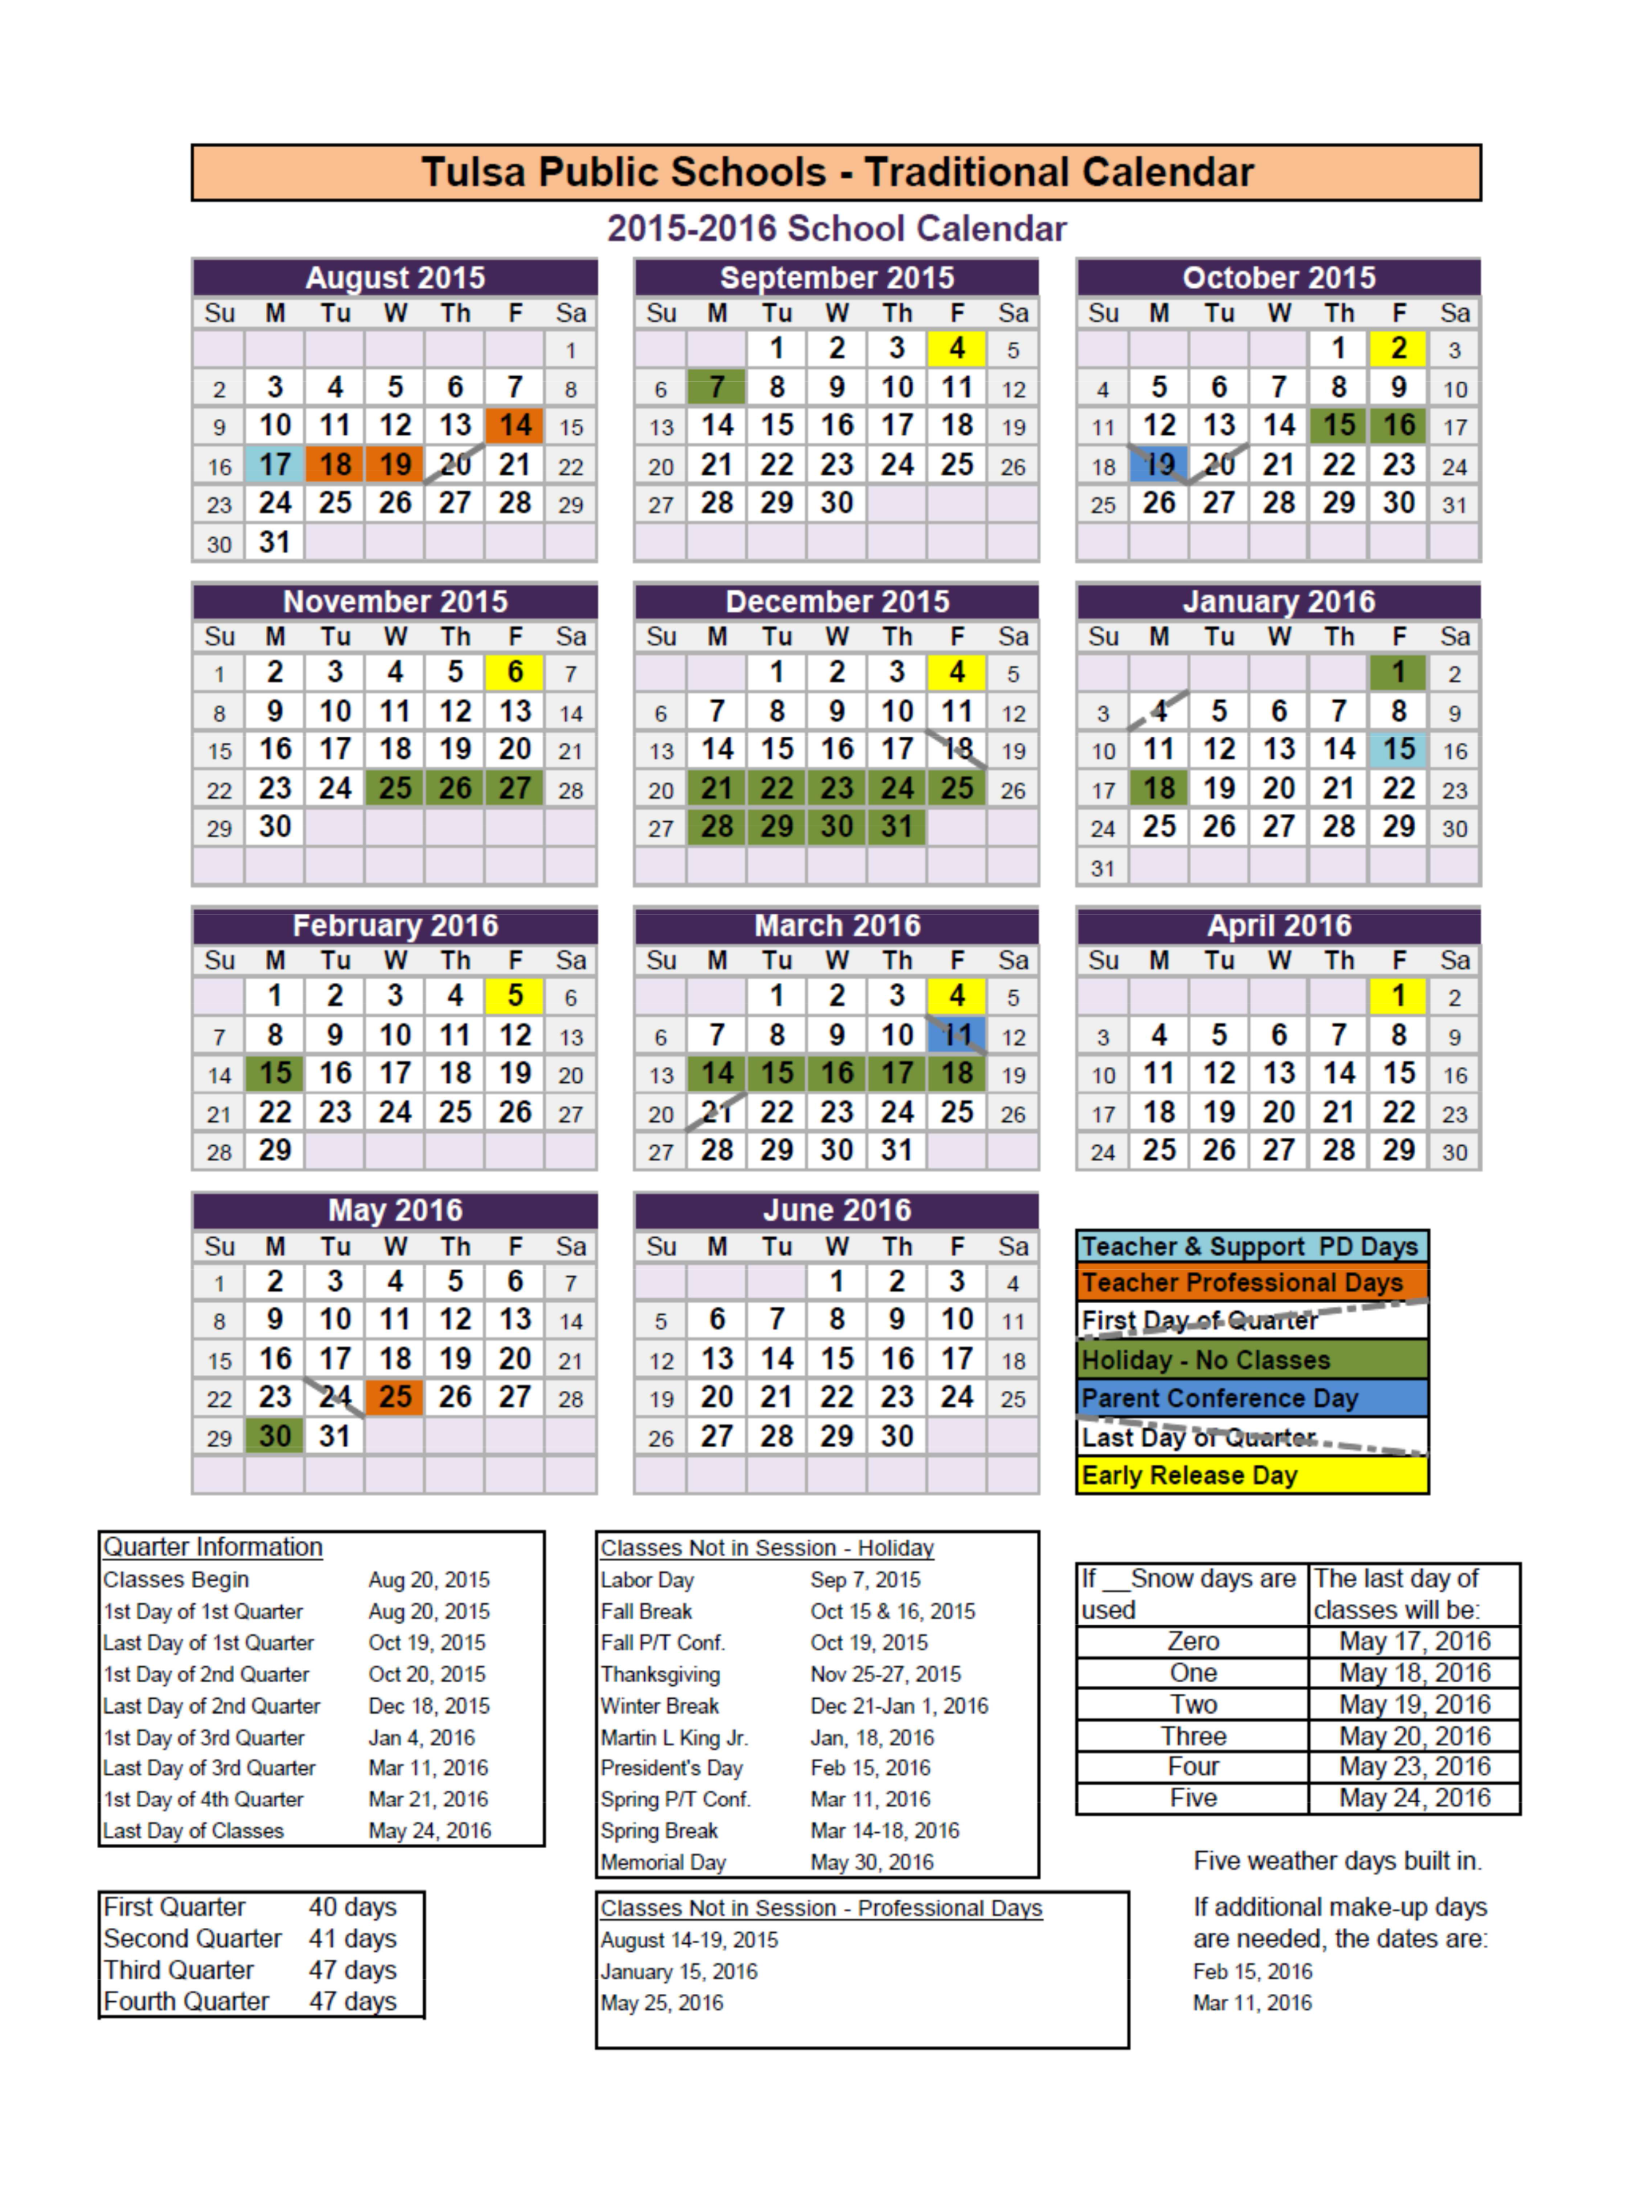 Tulsa Public Schools Finalize Calendar Years Through 2017 With Regard To Broken Arrow High School Spring Break